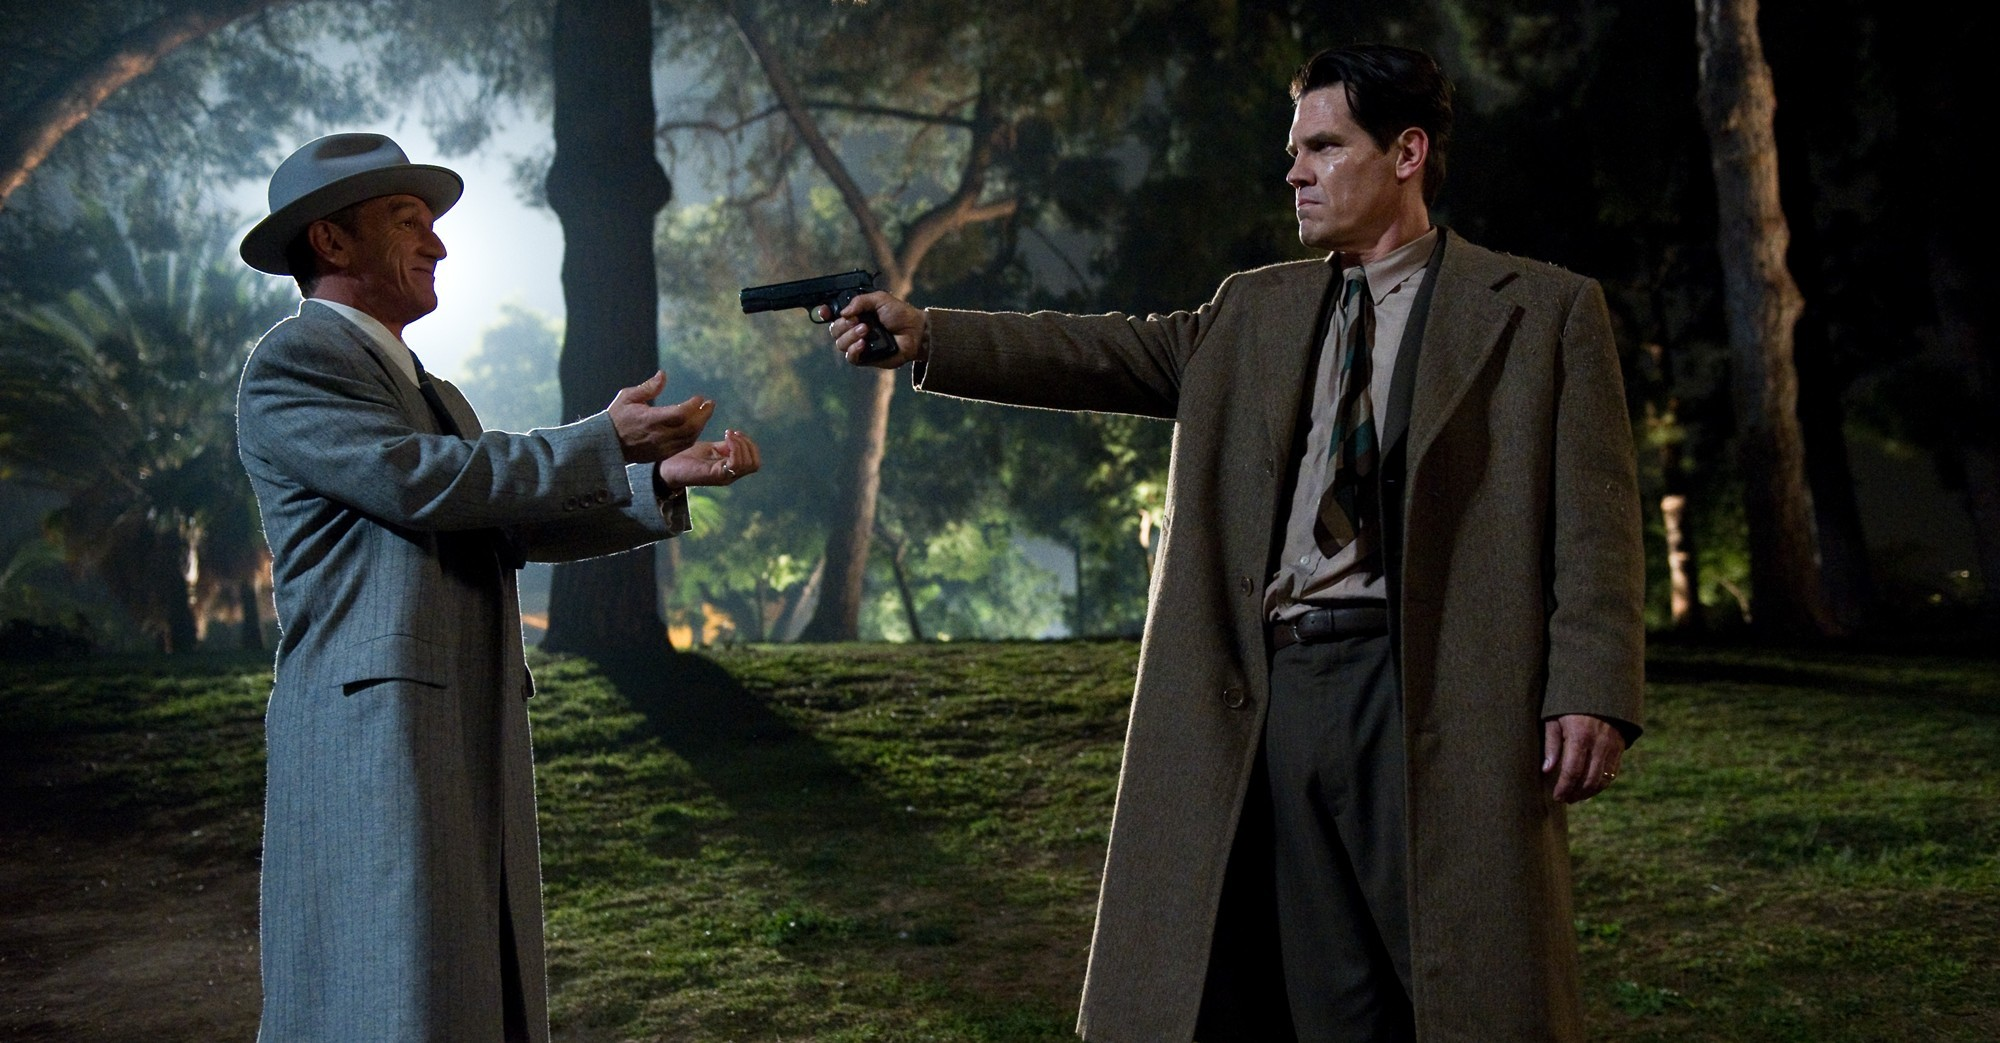 Josh Brolin and Sean Penn in Gangster Squad